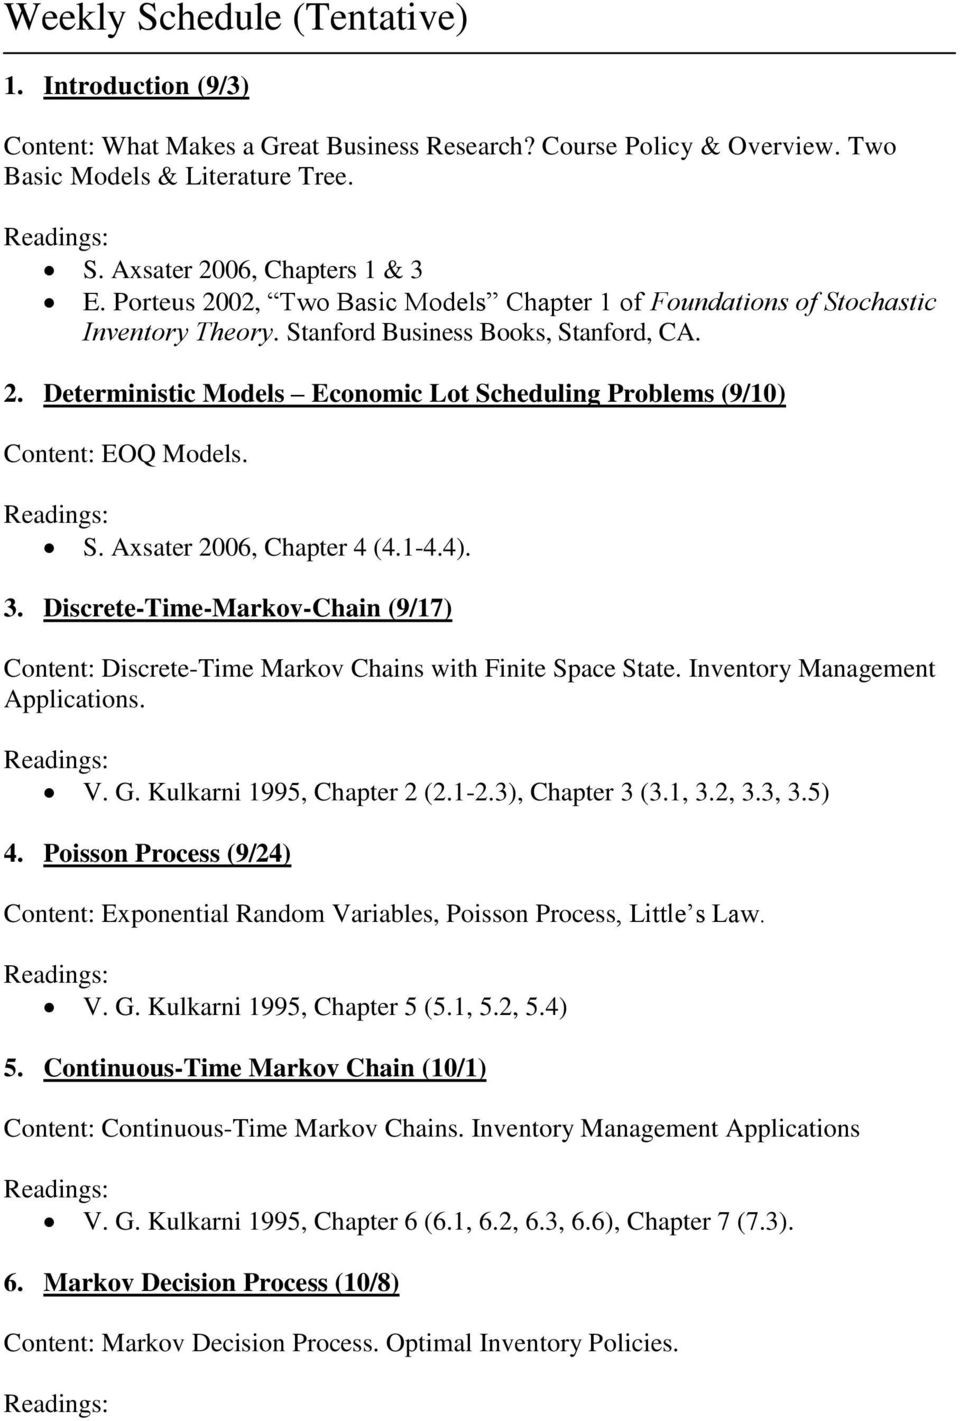 S. Axsater 2006, Chapter 4 (4.1-4.4). 3. Discrete-Time-Markov-Chain (9/17) Content: Discrete-Time Markov Chains with Finite Space State. Inventory Management Applications. V. G.